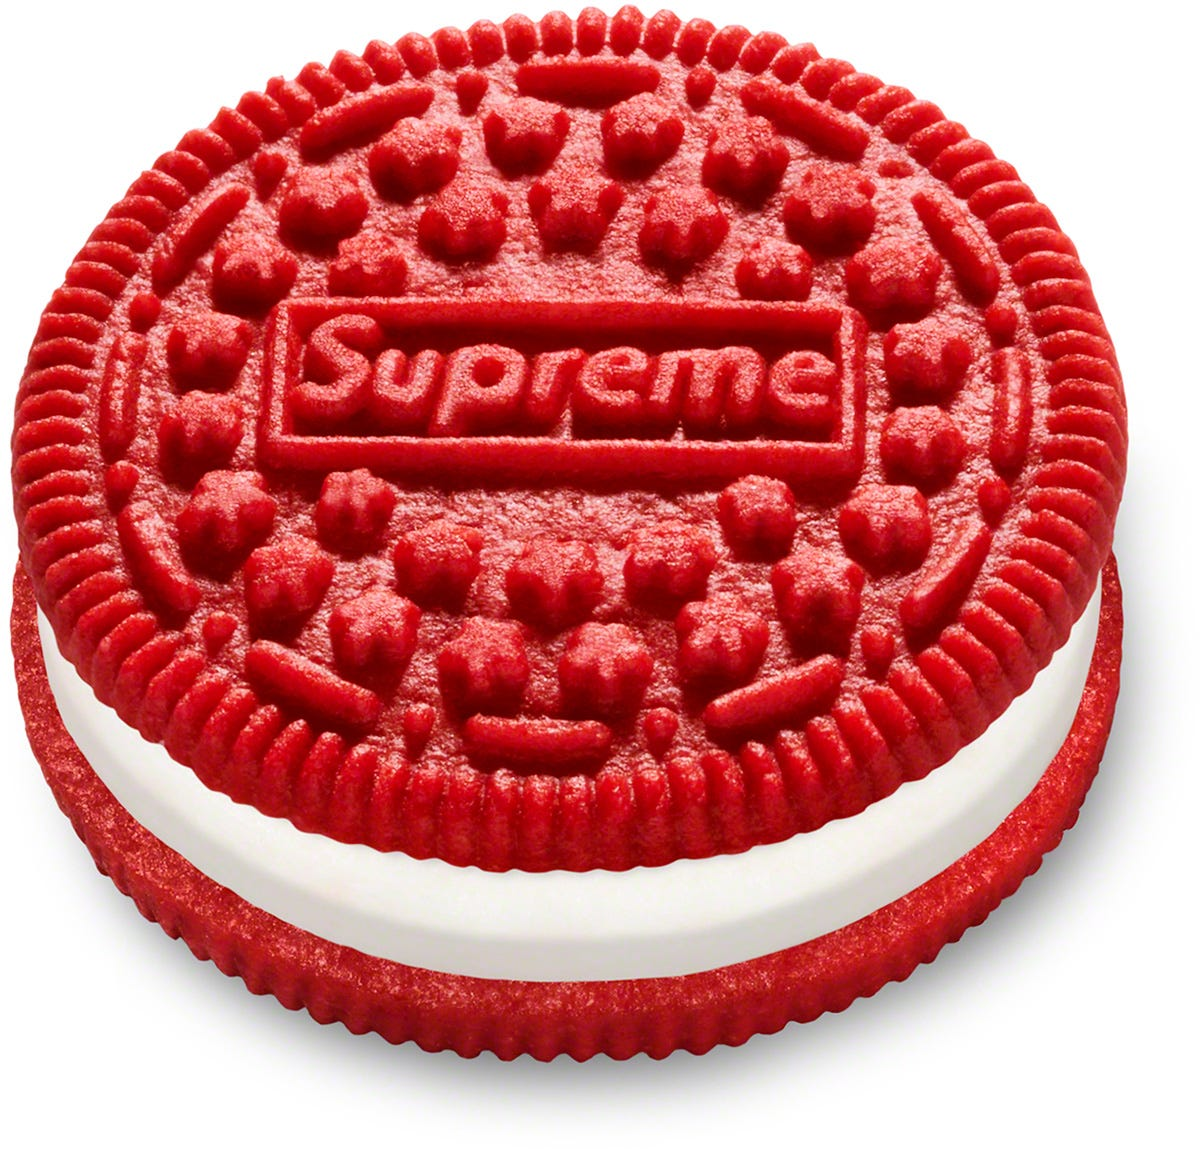 Oreo, Supreme cookies reselling for up to $15,000 on eBay